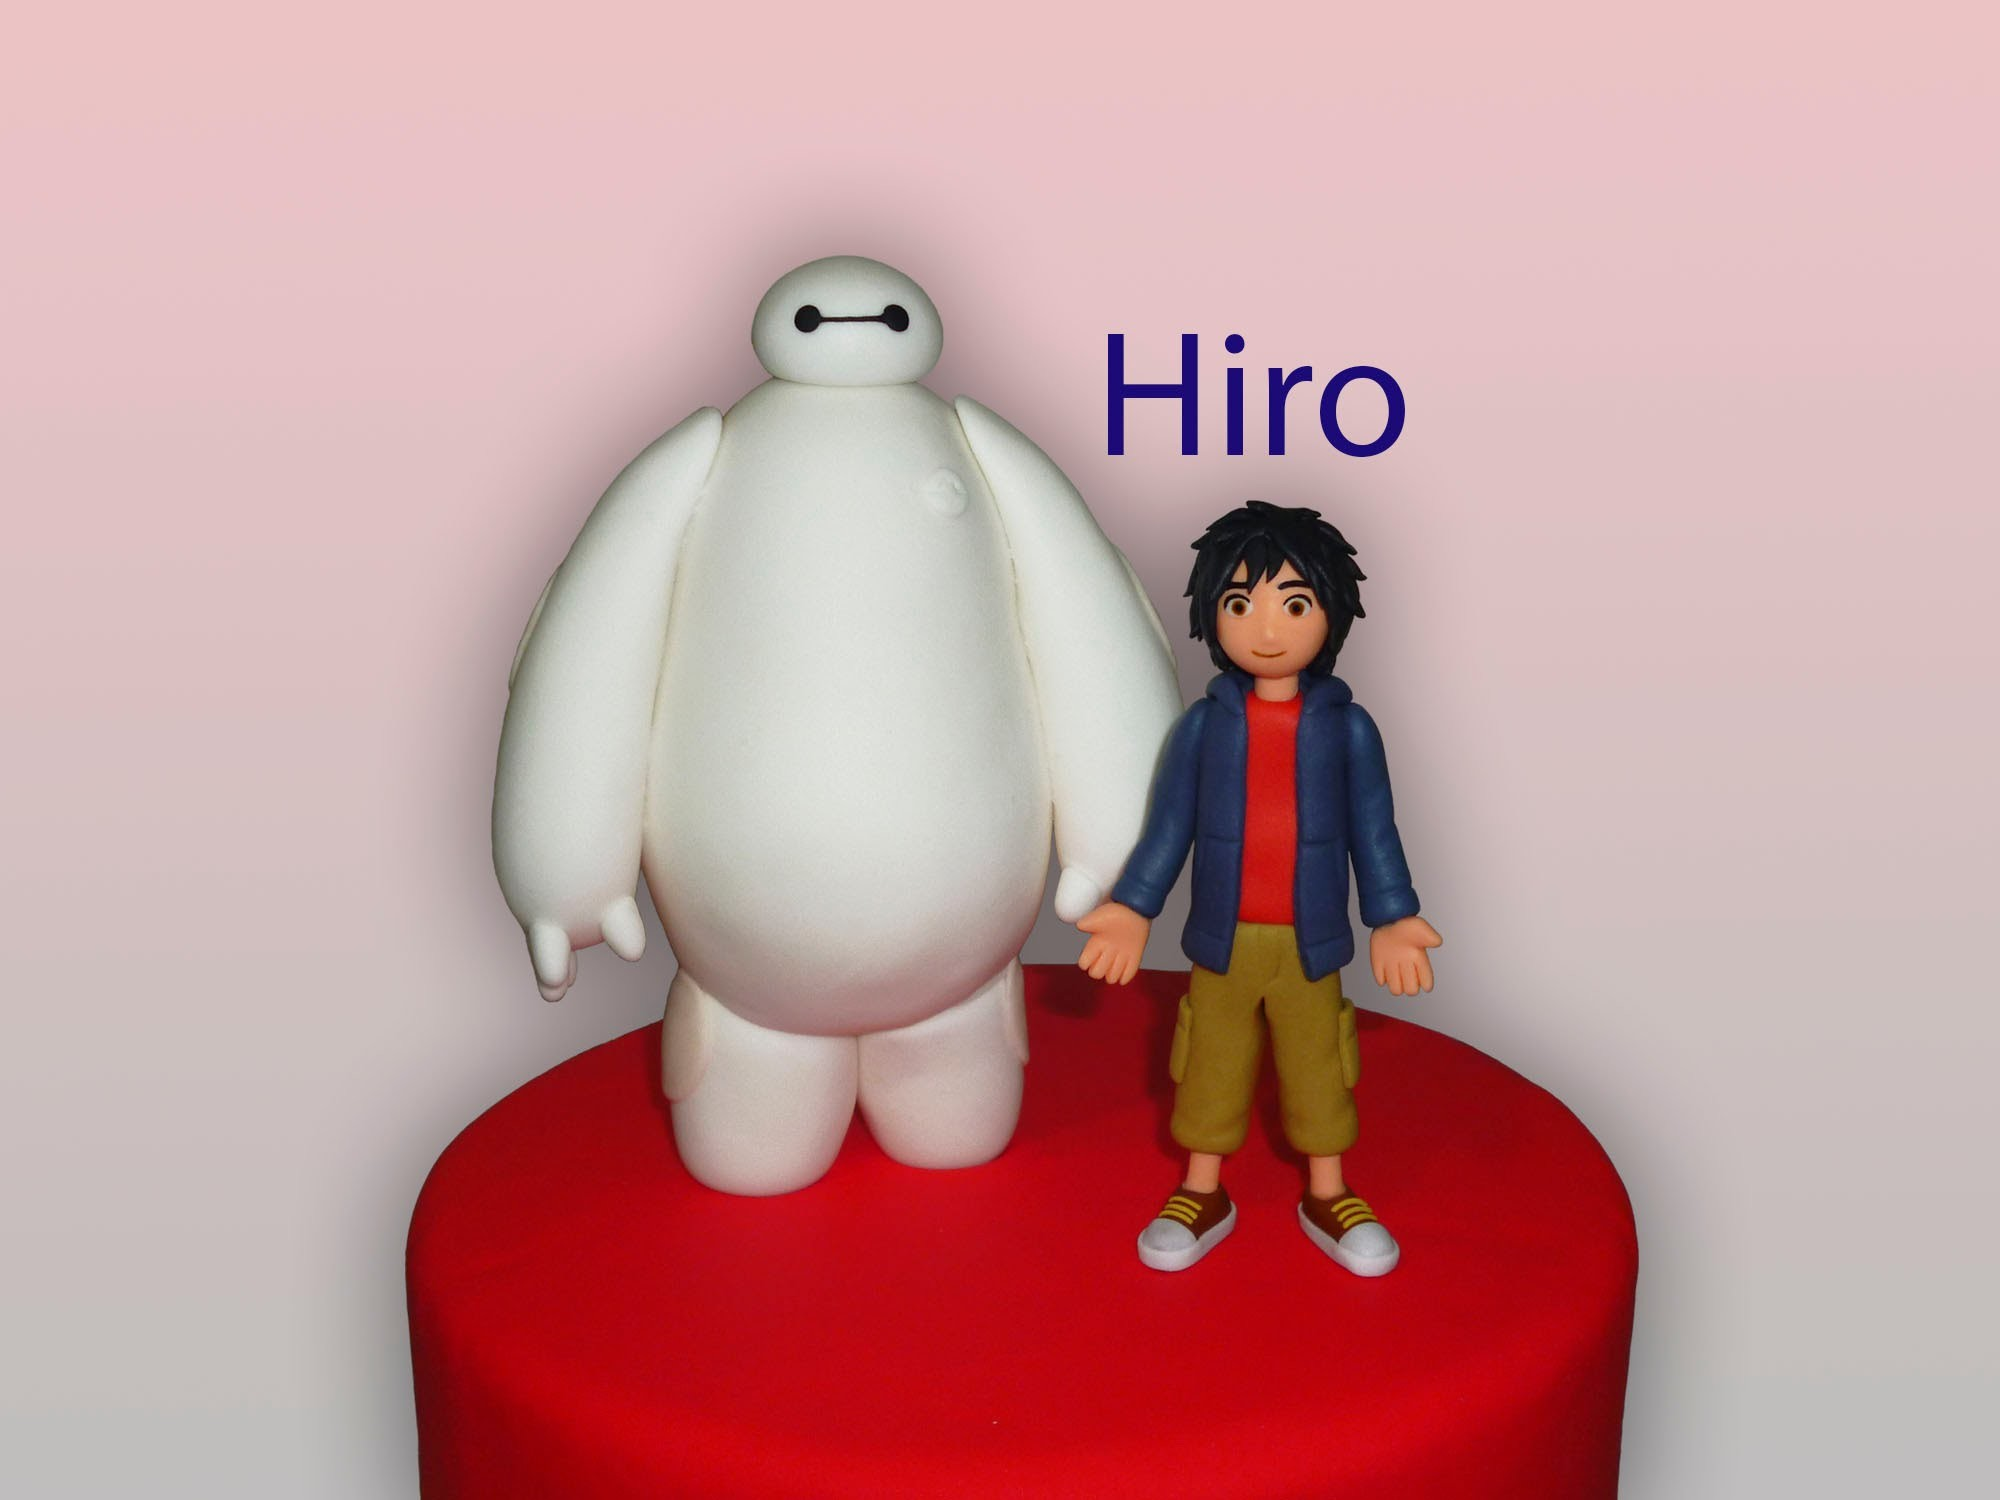 How to make Baymax and Hiro From Big Hero 6 (part 2.2) (Cómo hacer a Baymax y Hiro parte 2)